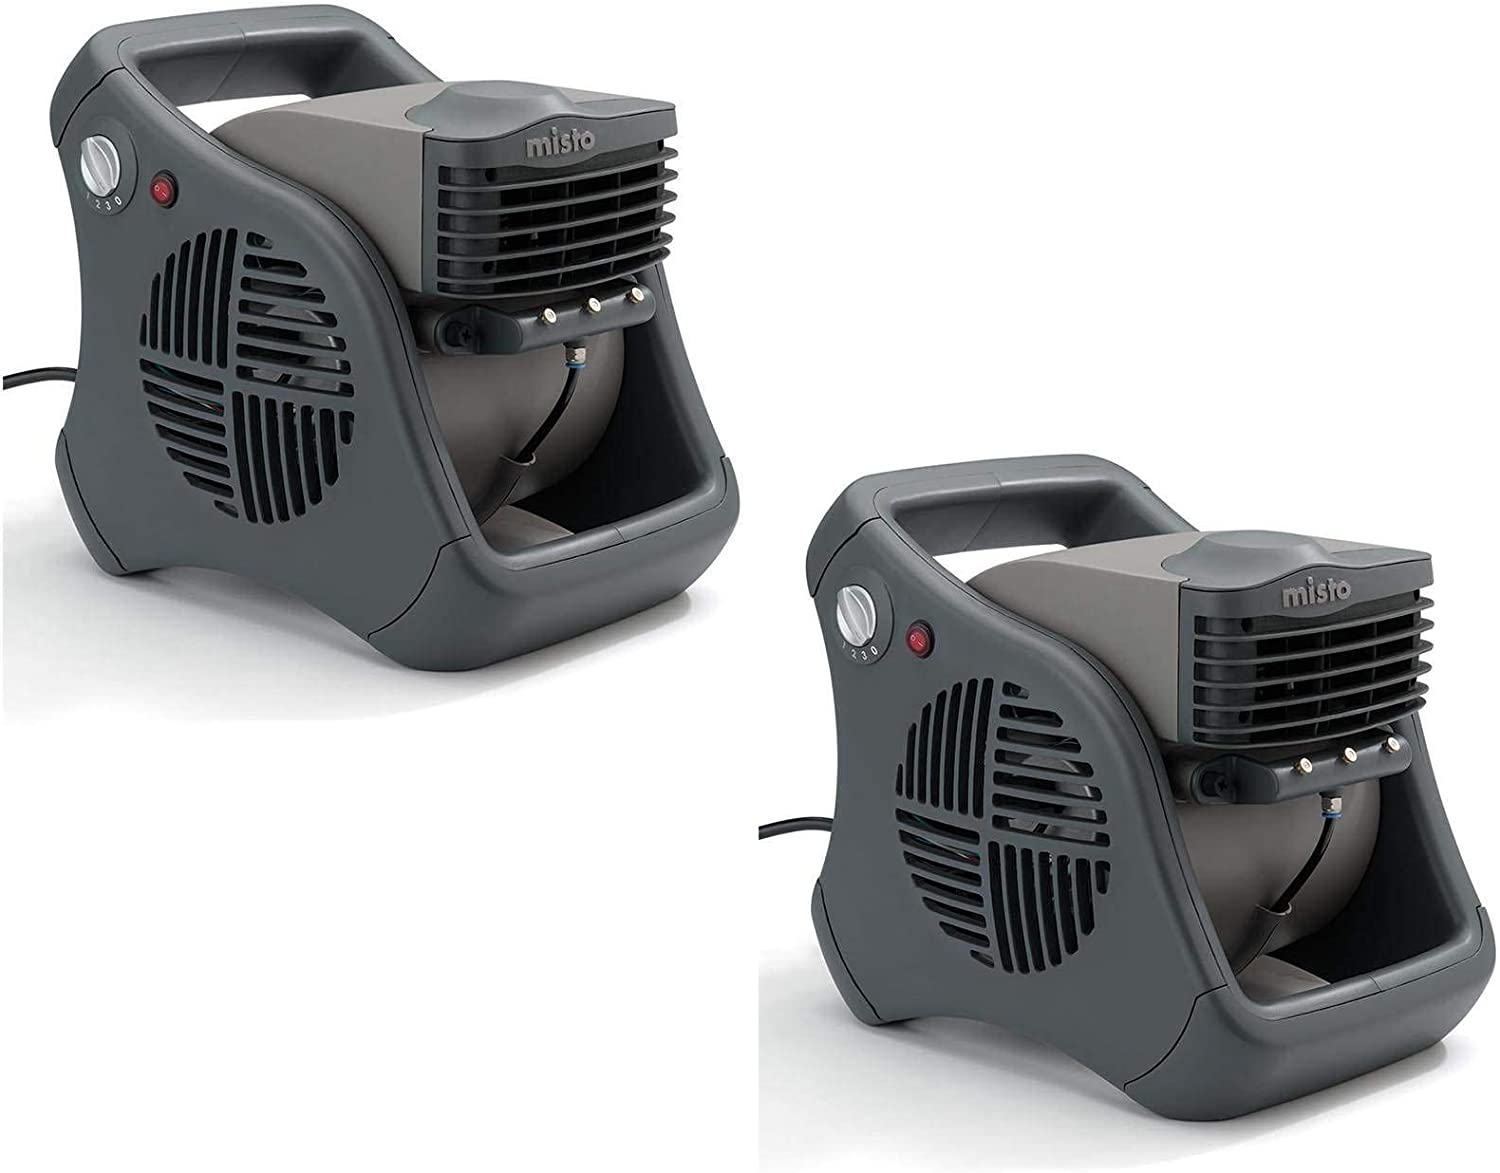 Lasko Misto Outdoor Patio Mister Portable Cooling Water Misting Fan (2 Pack)